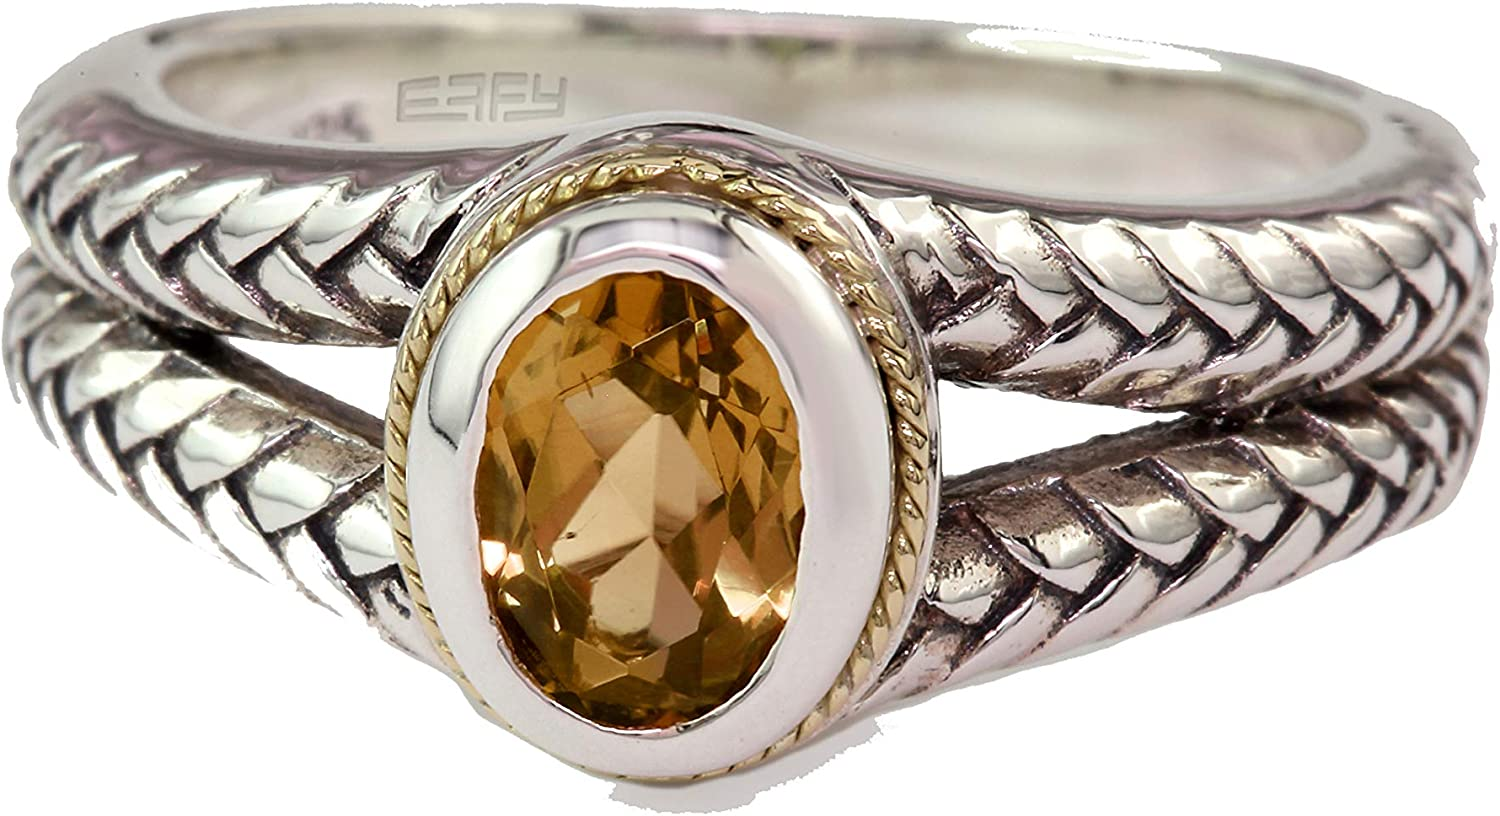 EFFY 925 STERLING SILVER 18K RING CITRINE GOLD YELLOW online shopping OFFicial site